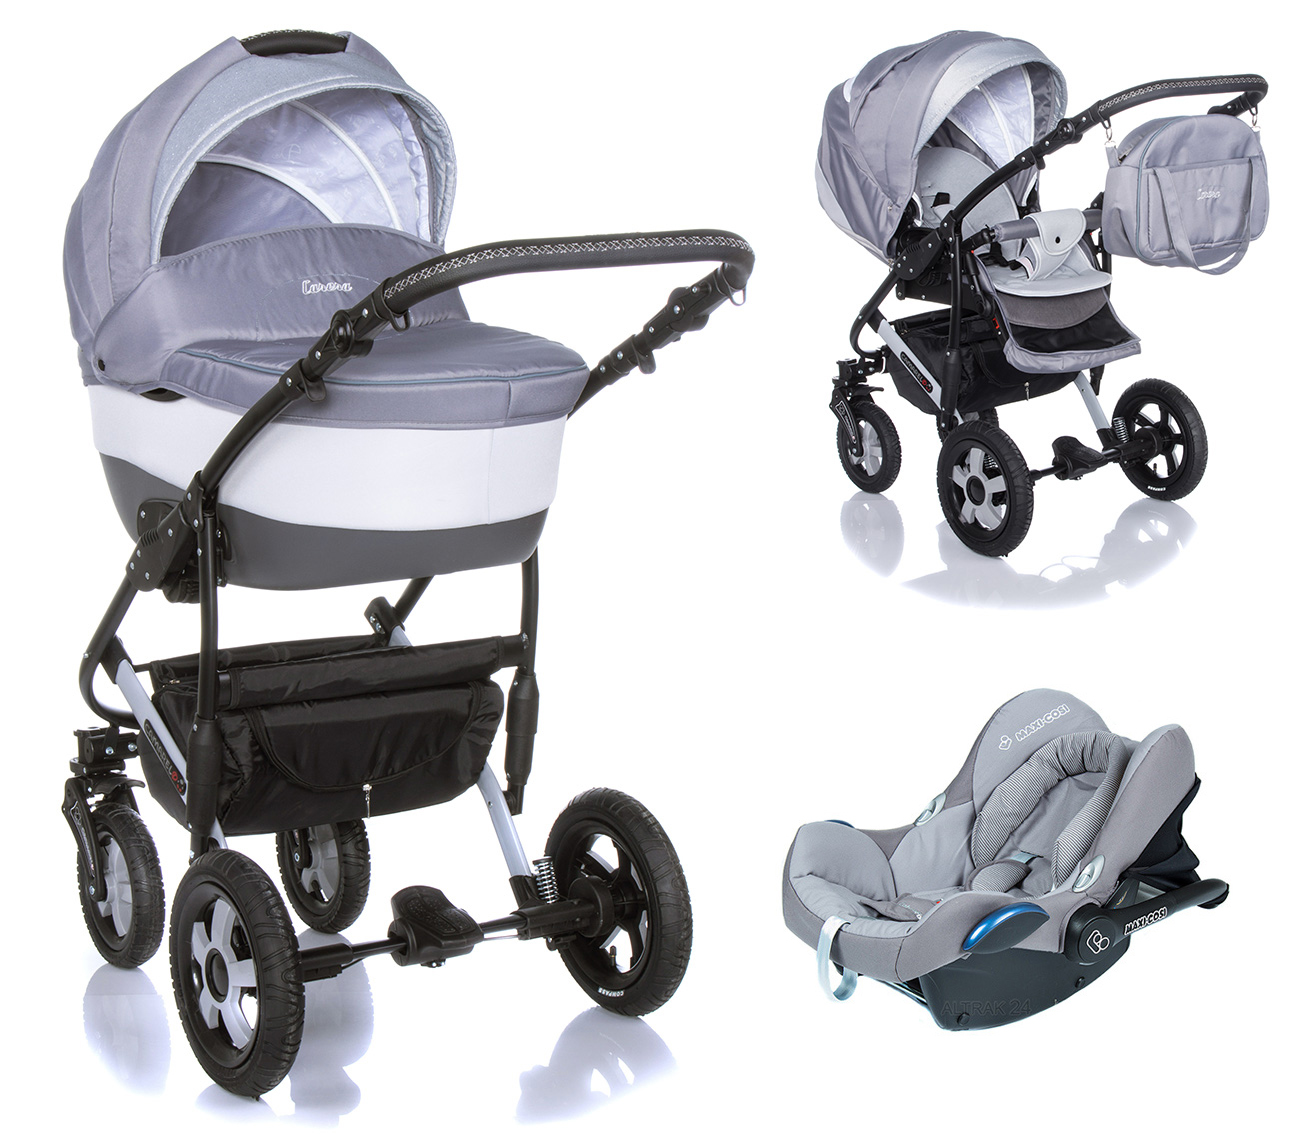 Kombikinderwagen Testsieger Adac Details About Combi Pram Baby Carriage Camarelo Carera Buggy 2in1 Sale 20 Off Show Original Title